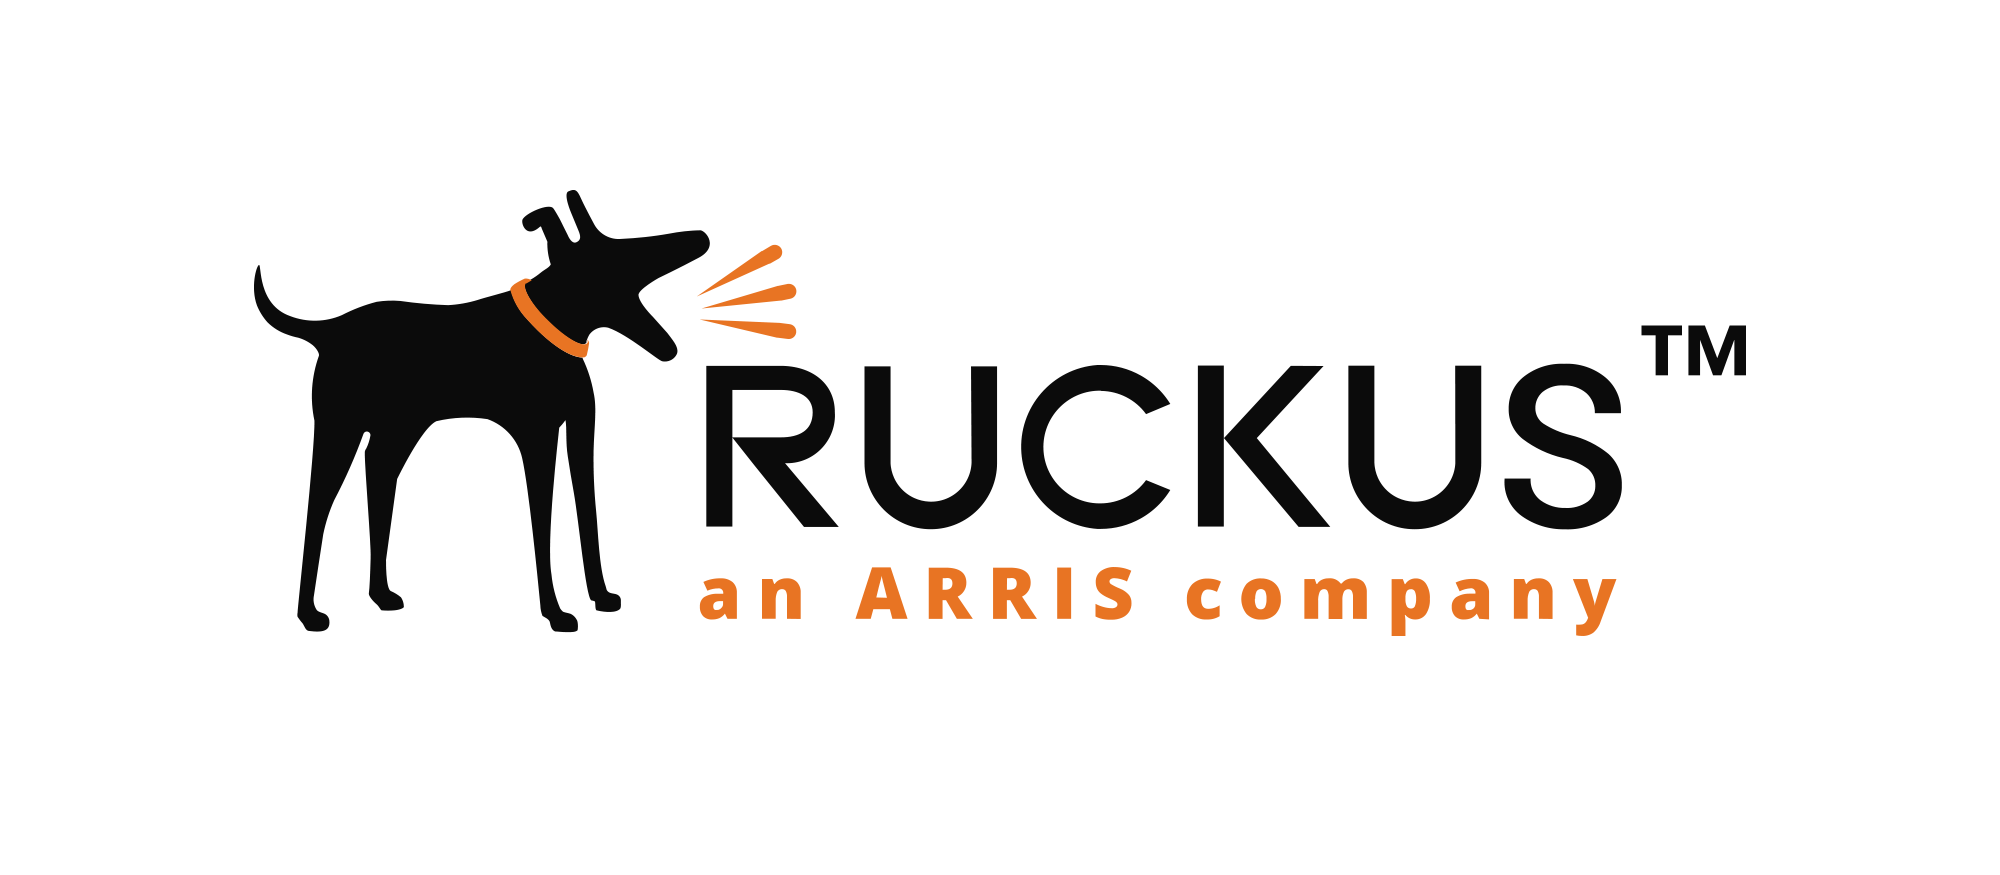 RUCKUS - Powerful, reliable, scalable, wireless from a world leader in the field.